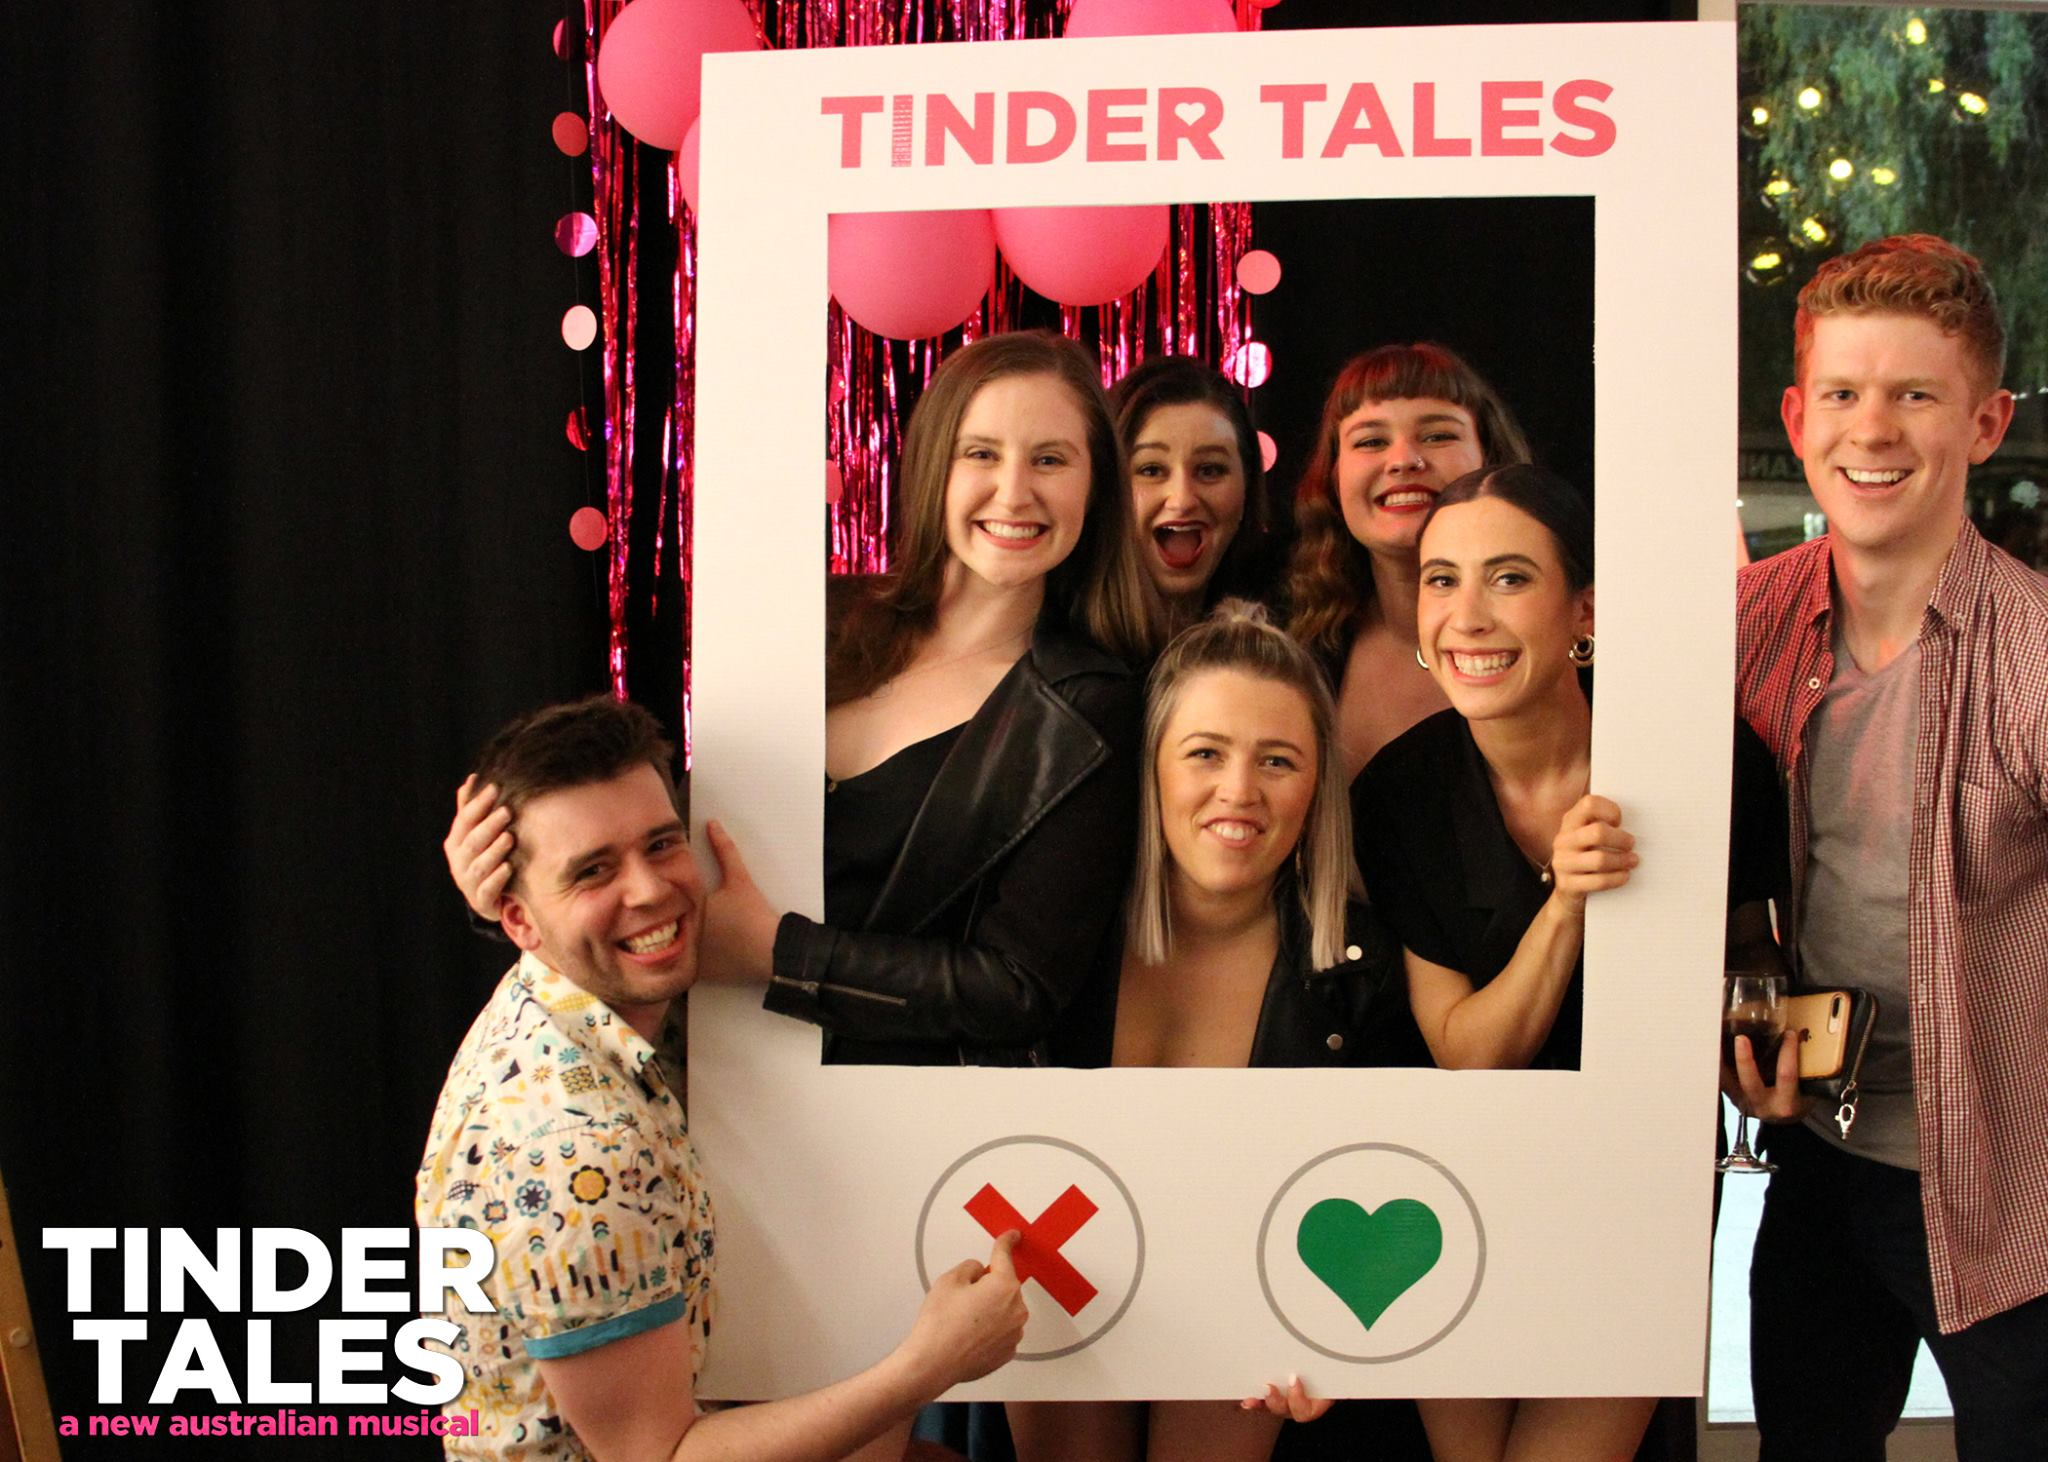 Review: Tinder Tales